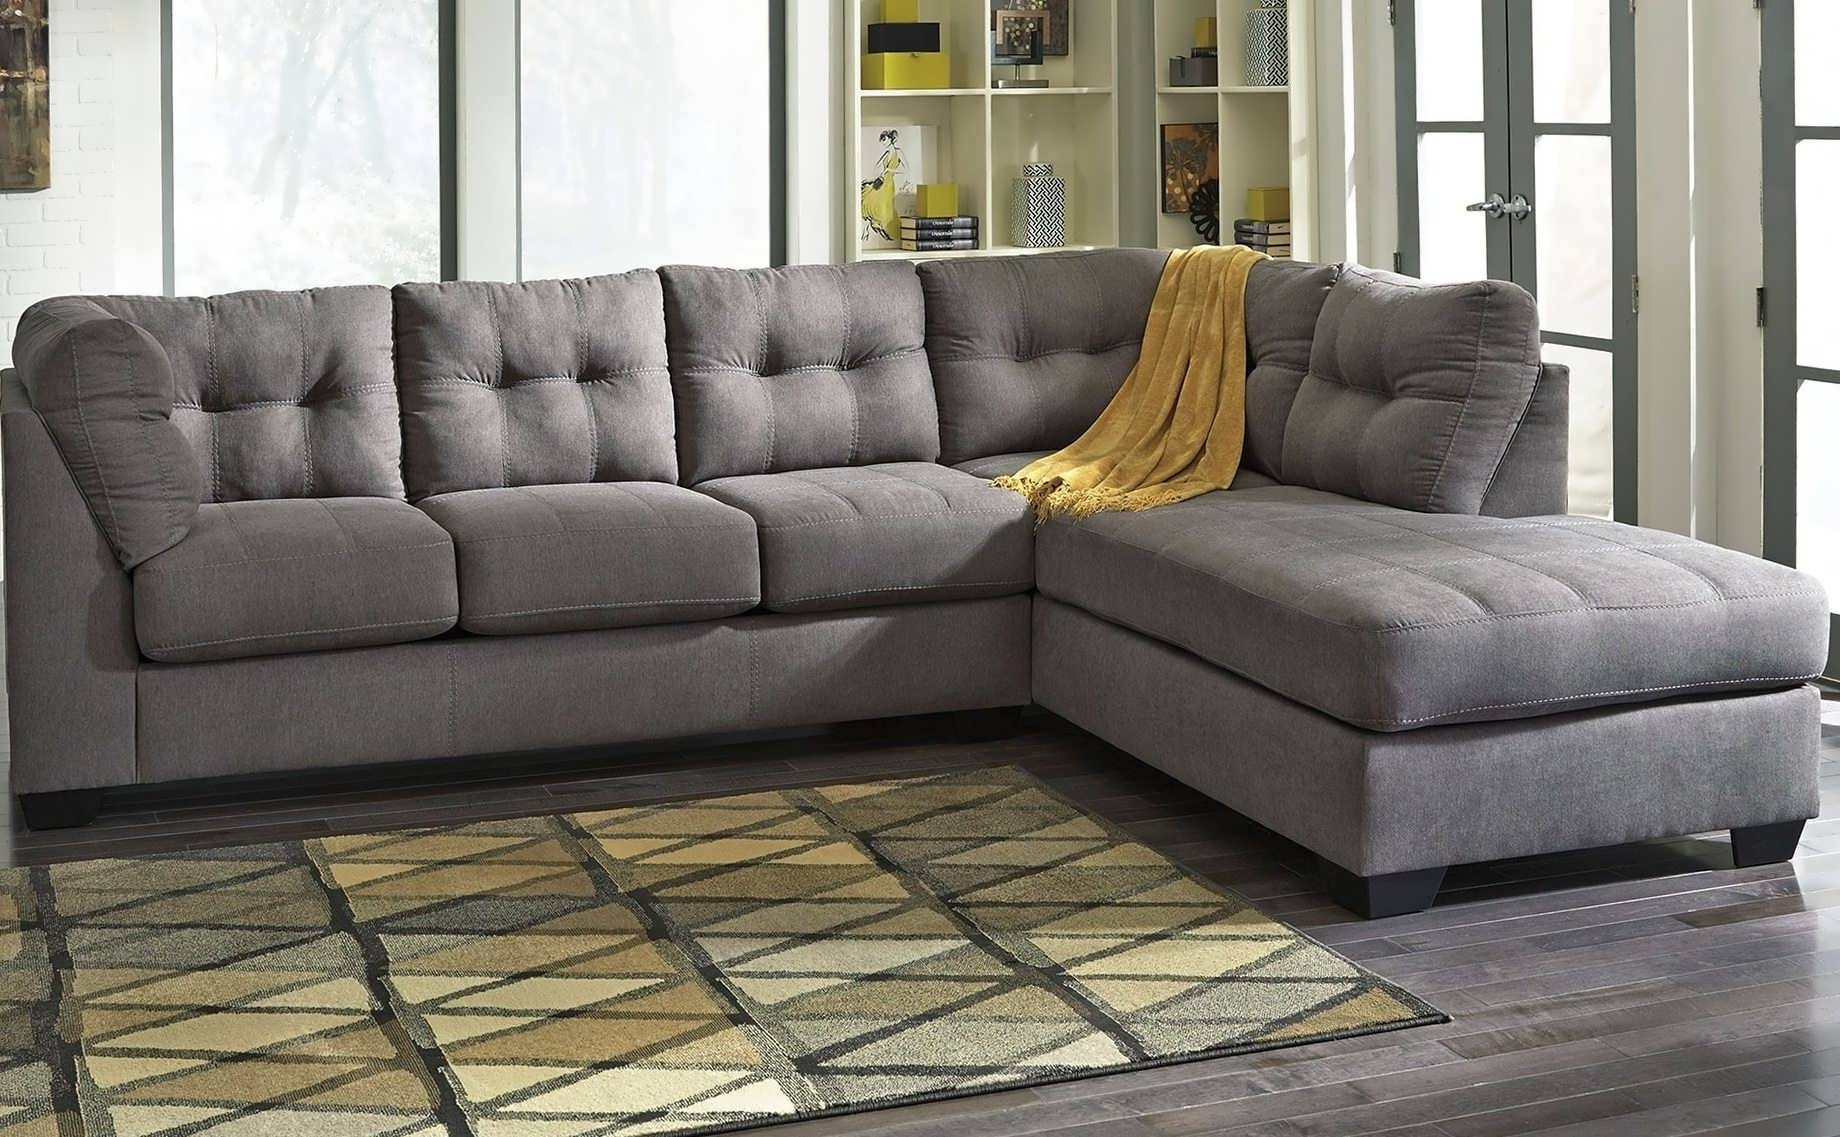 2017 Sectionals With Chaise Lounge Regarding Sofa : Grey Sectional With Chaise Oversized Sectional Sofa White (View 6 of 15)